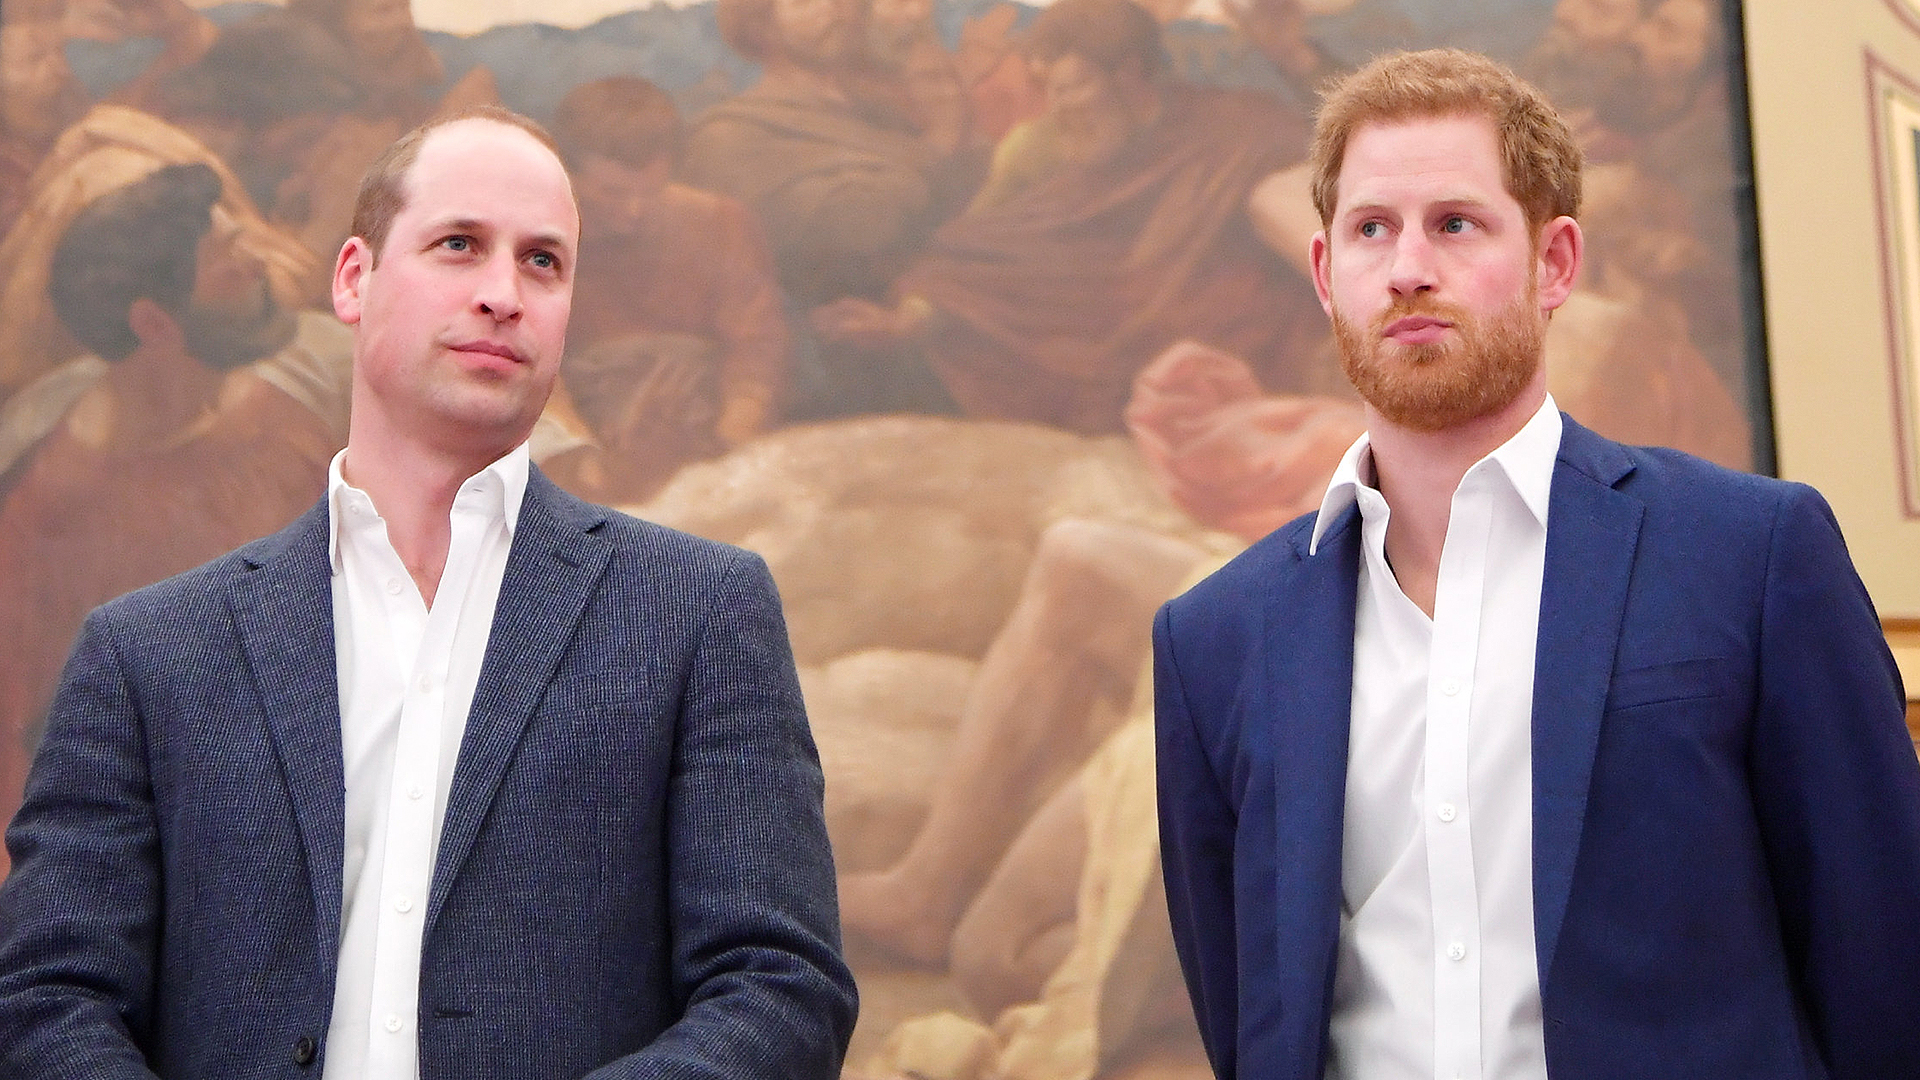 Prince William Named Sexiest Bald Man in Survey and the World Wide Web Has Doubts